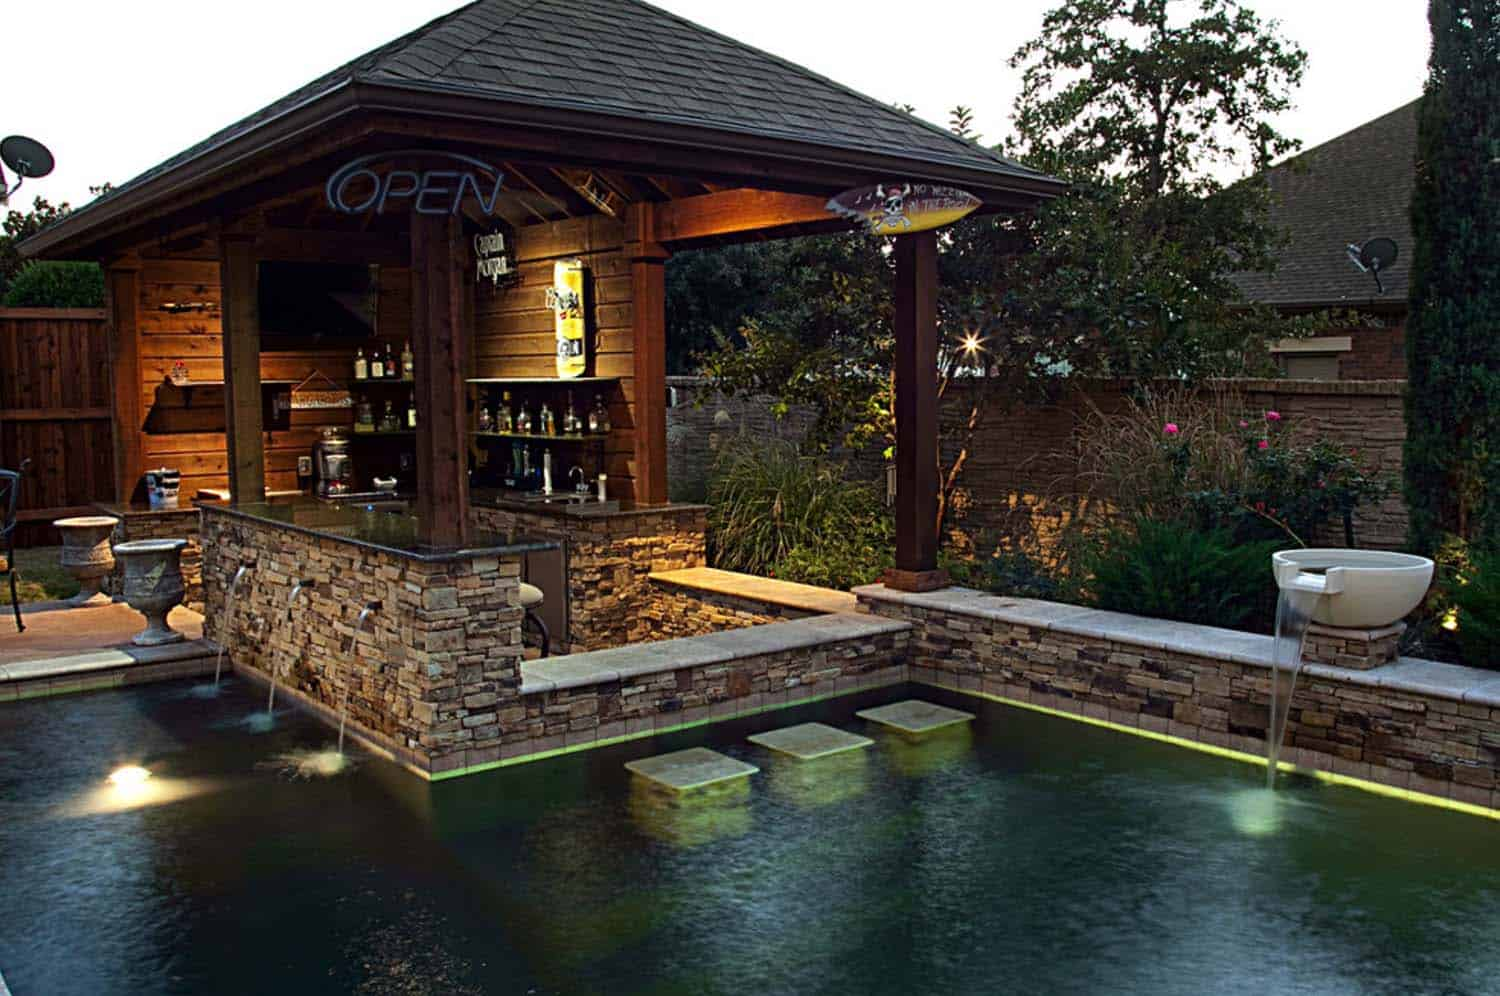 33 mega impressive swim up pool bars built for entertaining Pool house plans with bar